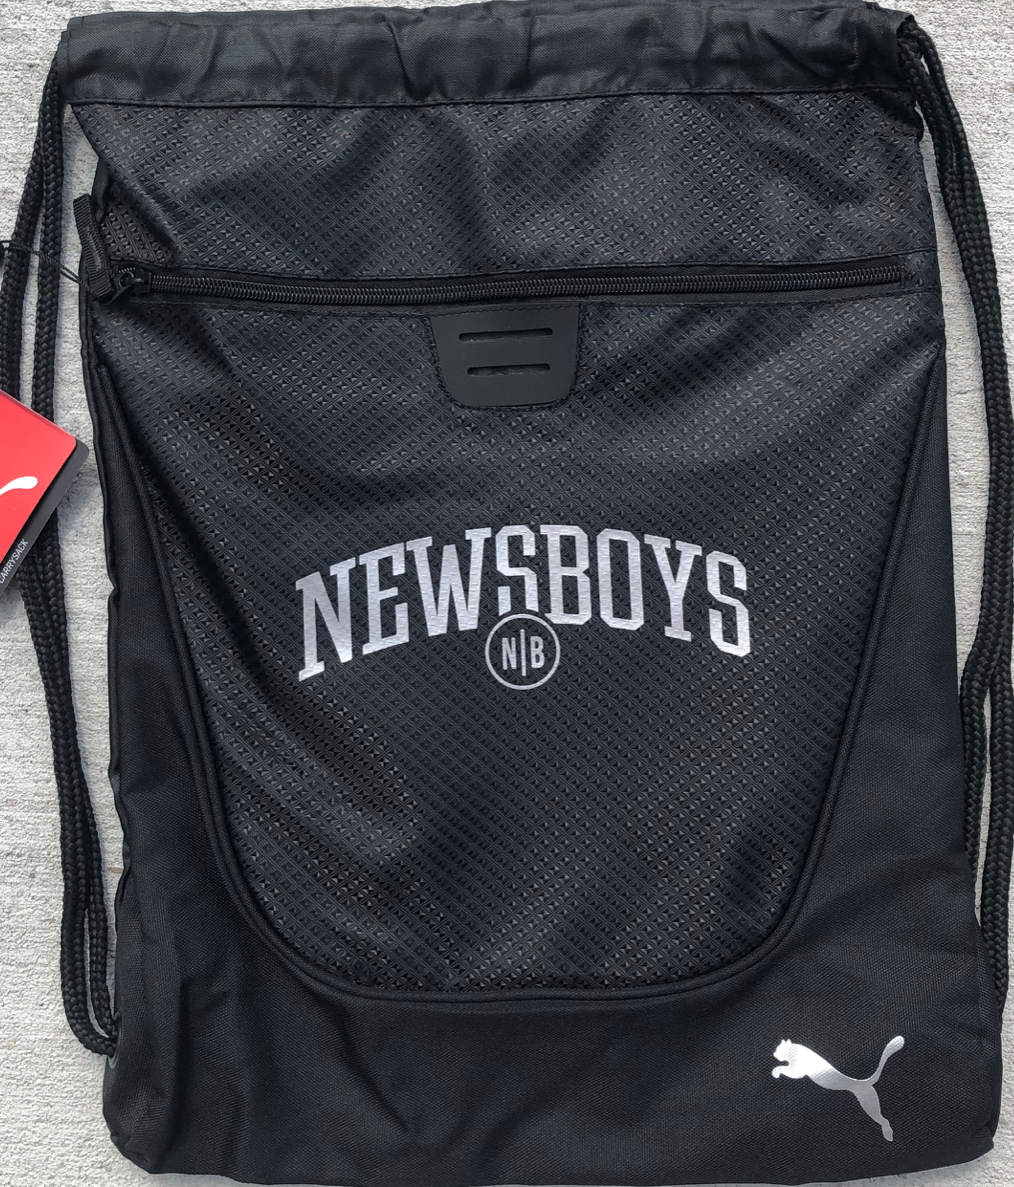 Newsboys carry sack by Puma